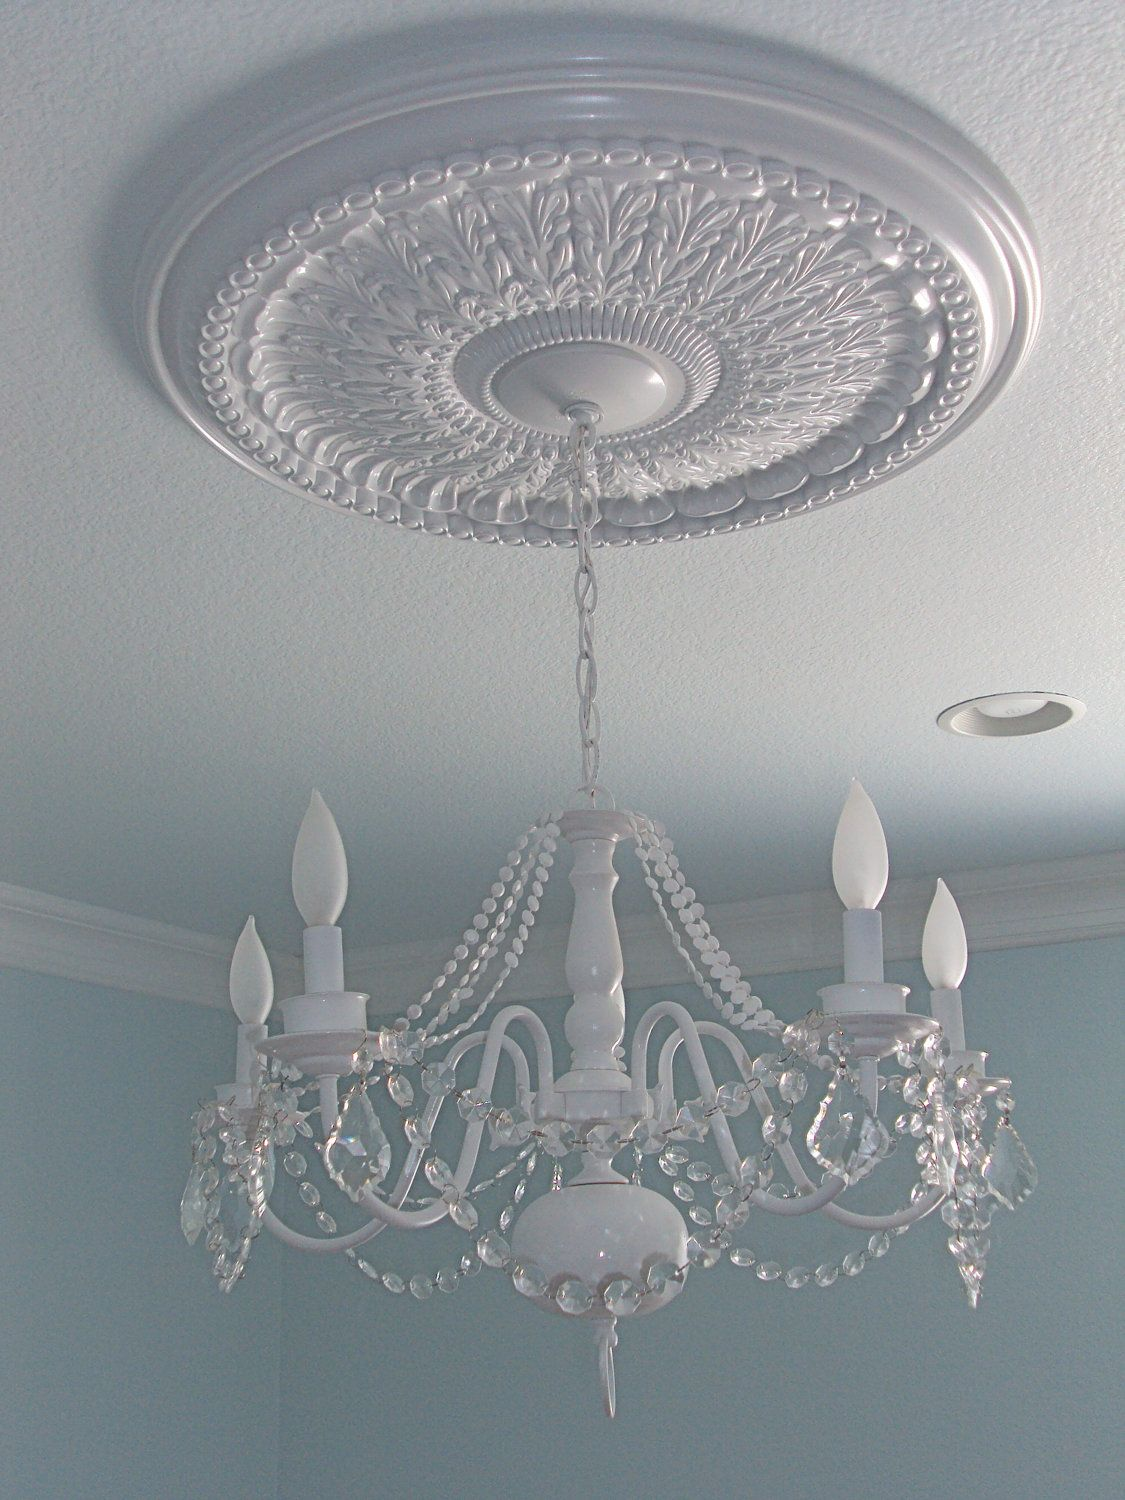 Ceiling medallion w refurbished chandelier kids rooms bath ceiling medallion w refurbished chandelier kids rooms bath dining living arubaitofo Choice Image